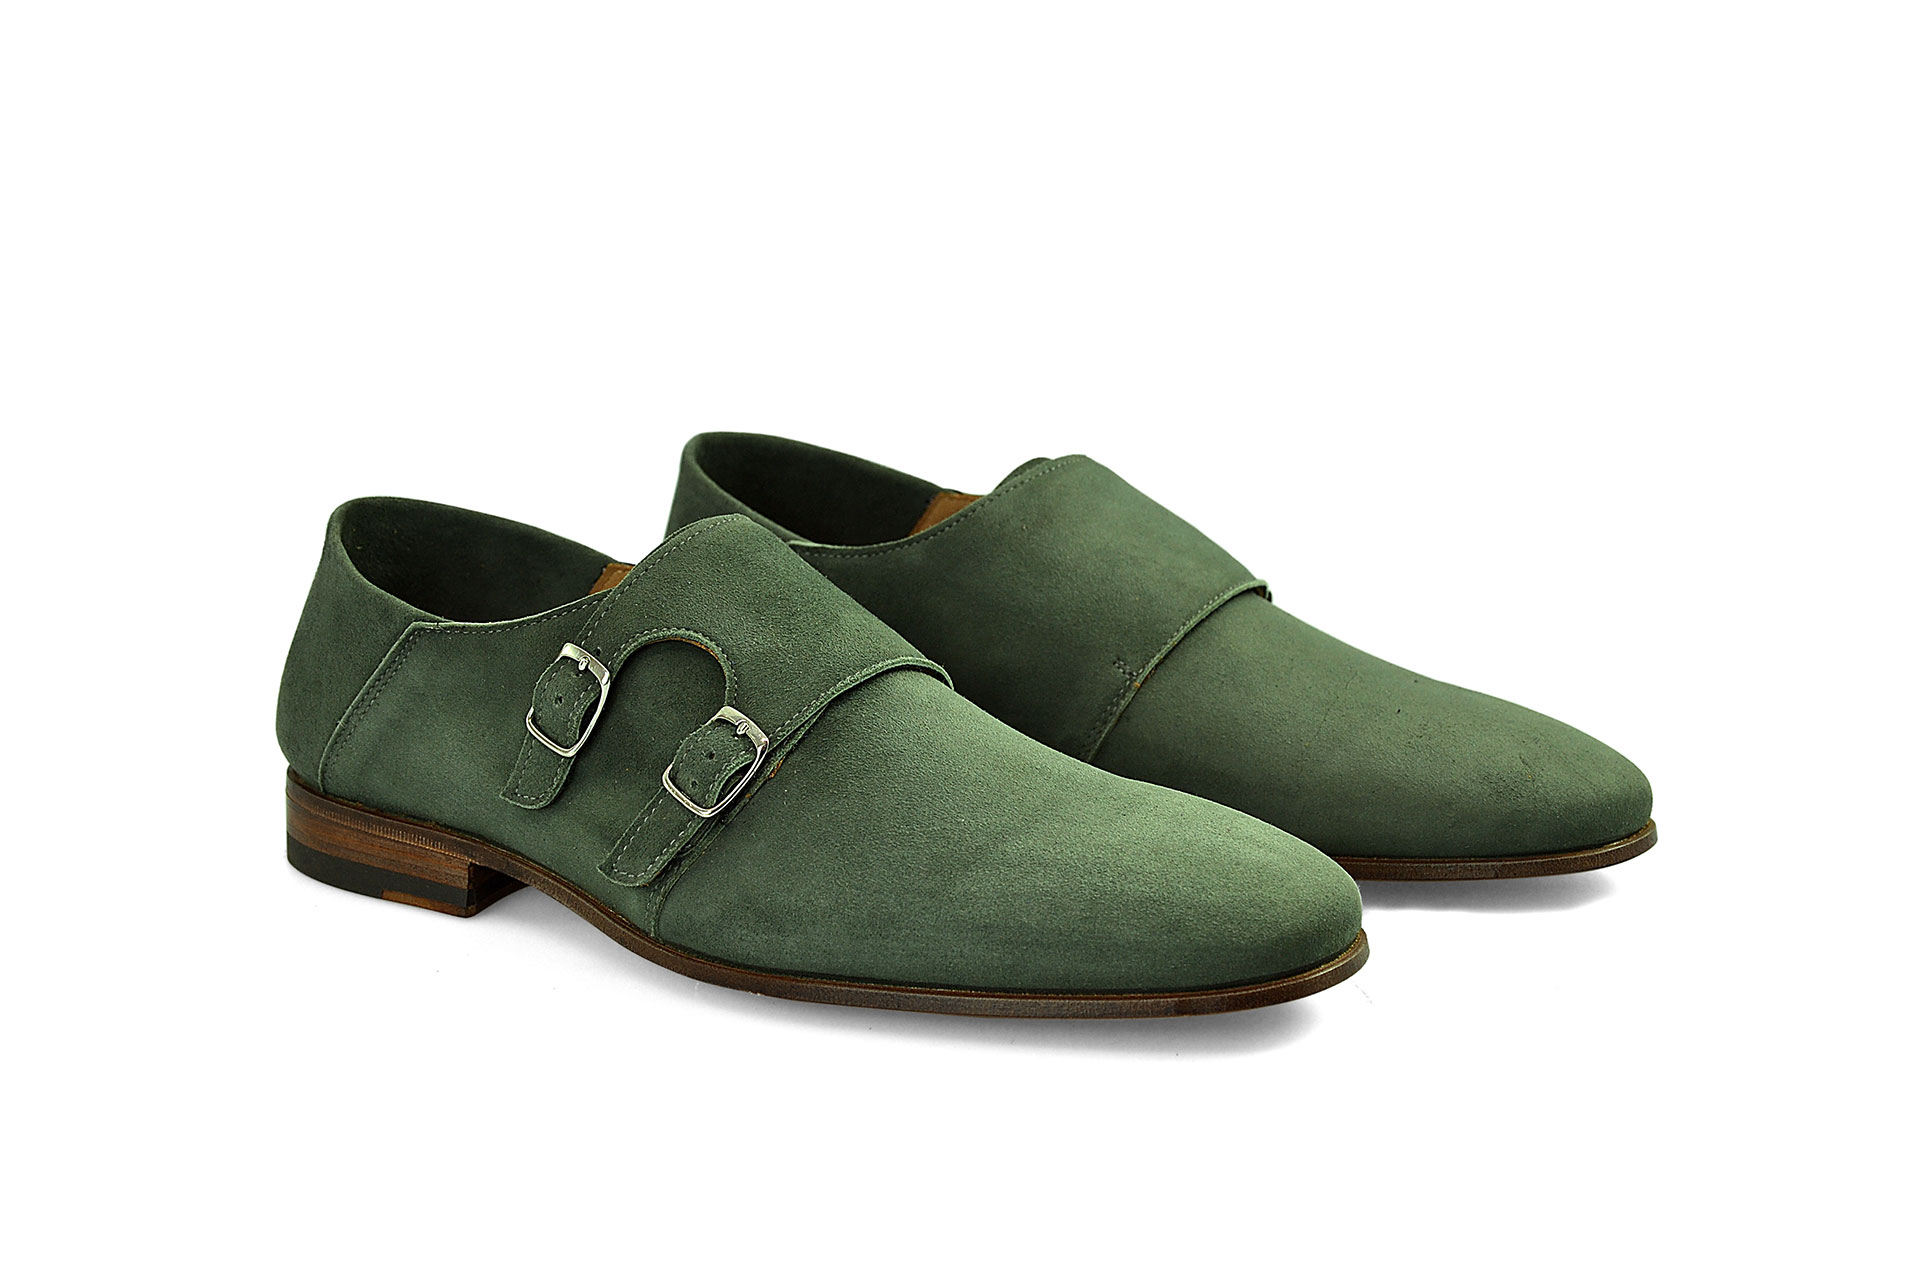 SHOES FIORANGELO MAN SS2021 ART. 113615 DOUBLE MONK CAMOSCIO VERDE GREEN